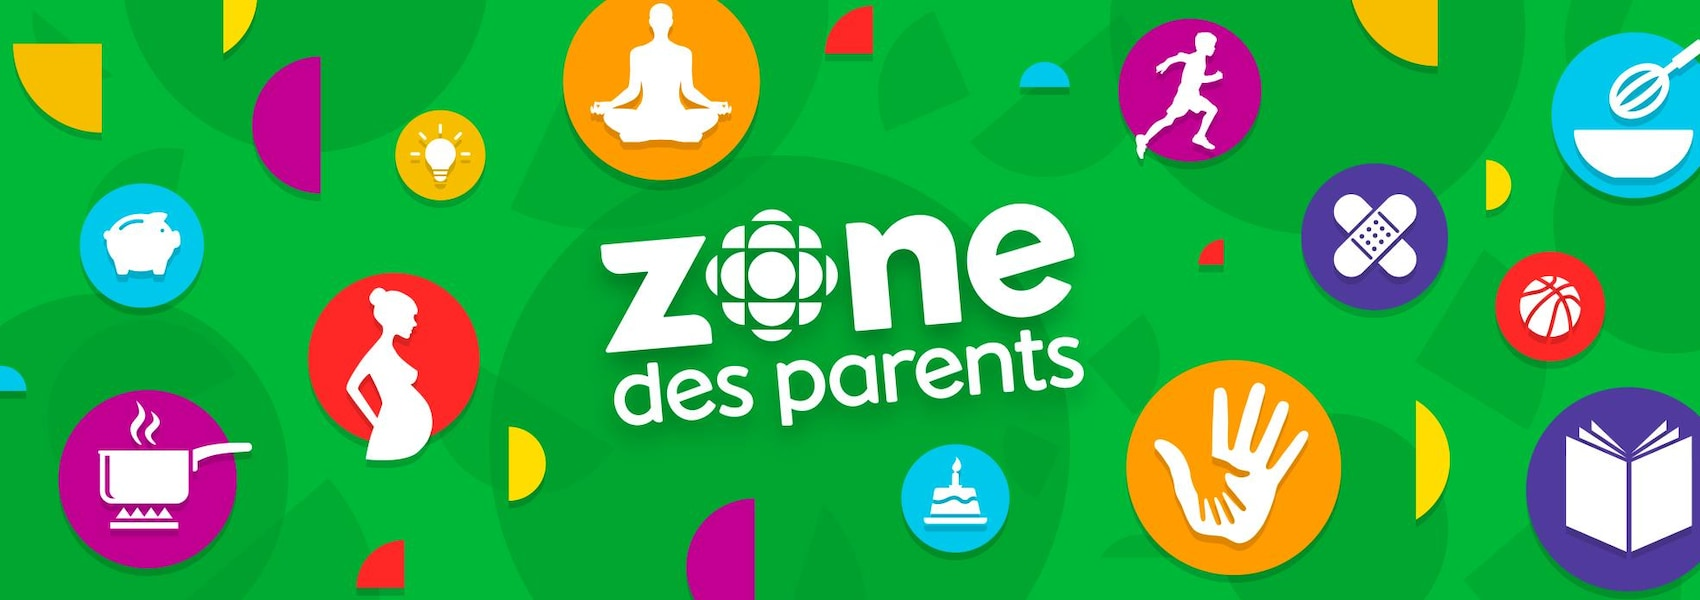 Jeunesse zone parents